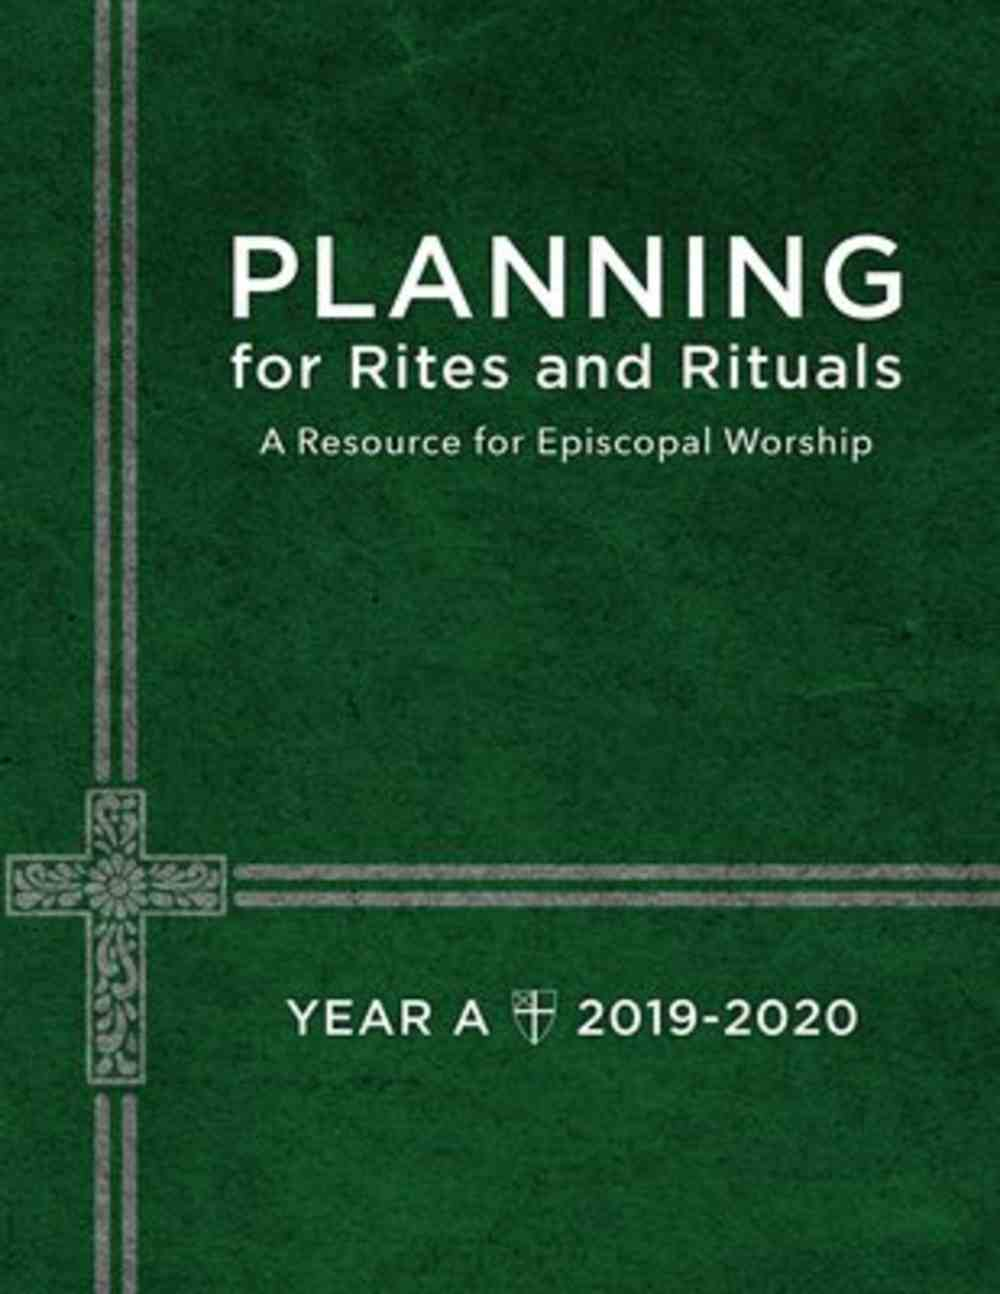 Planning For Rites and Rituals: A Resource For Episcopal Worship: Year A, 2019-2020 Paperback